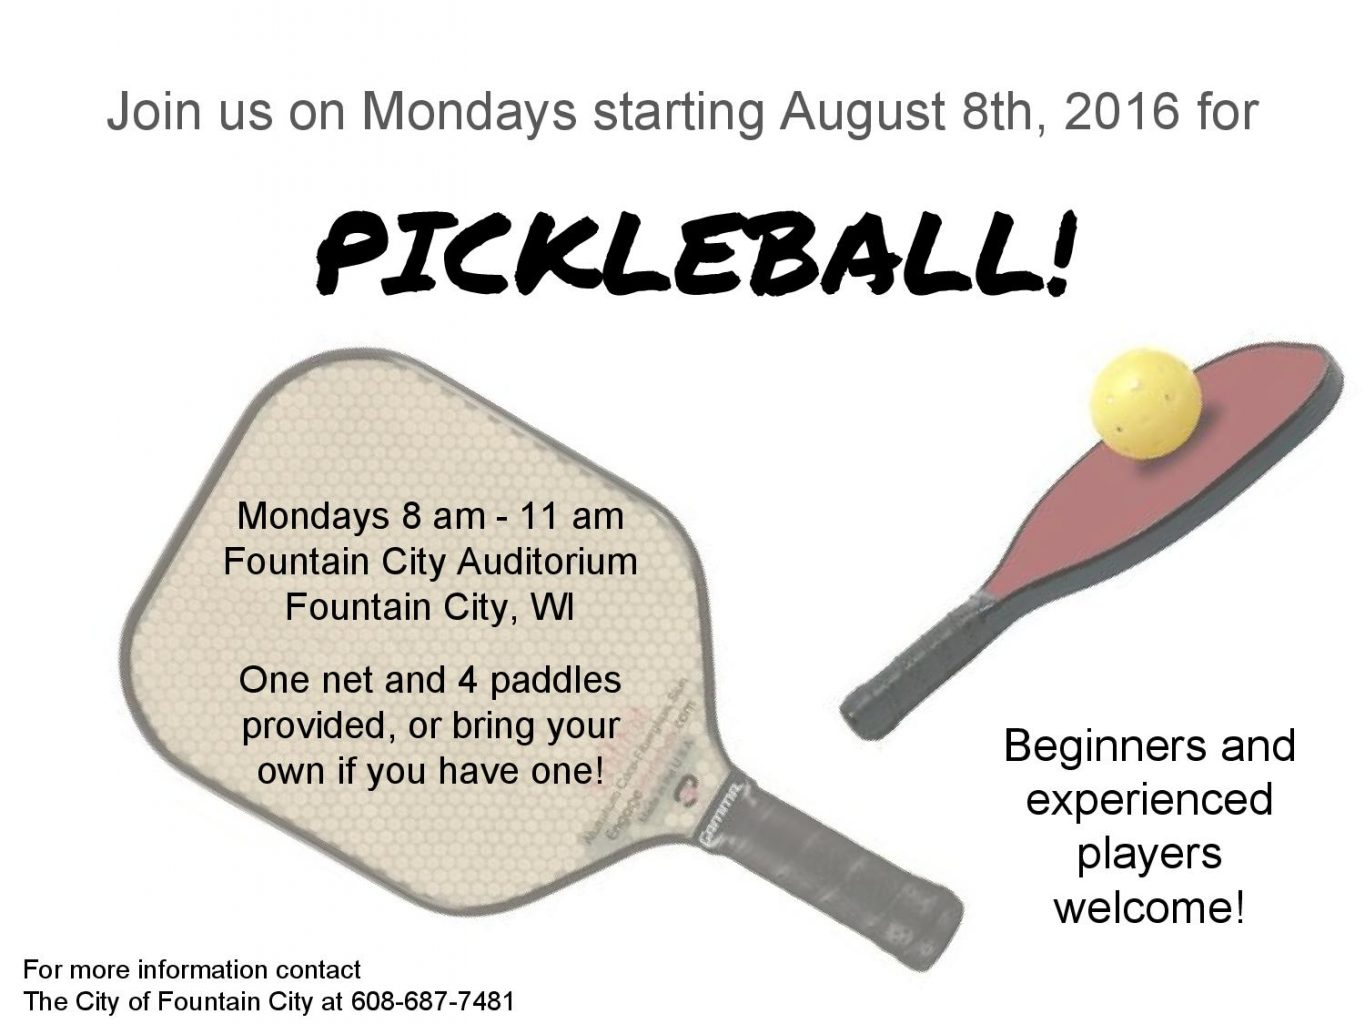 pickleball-page-001